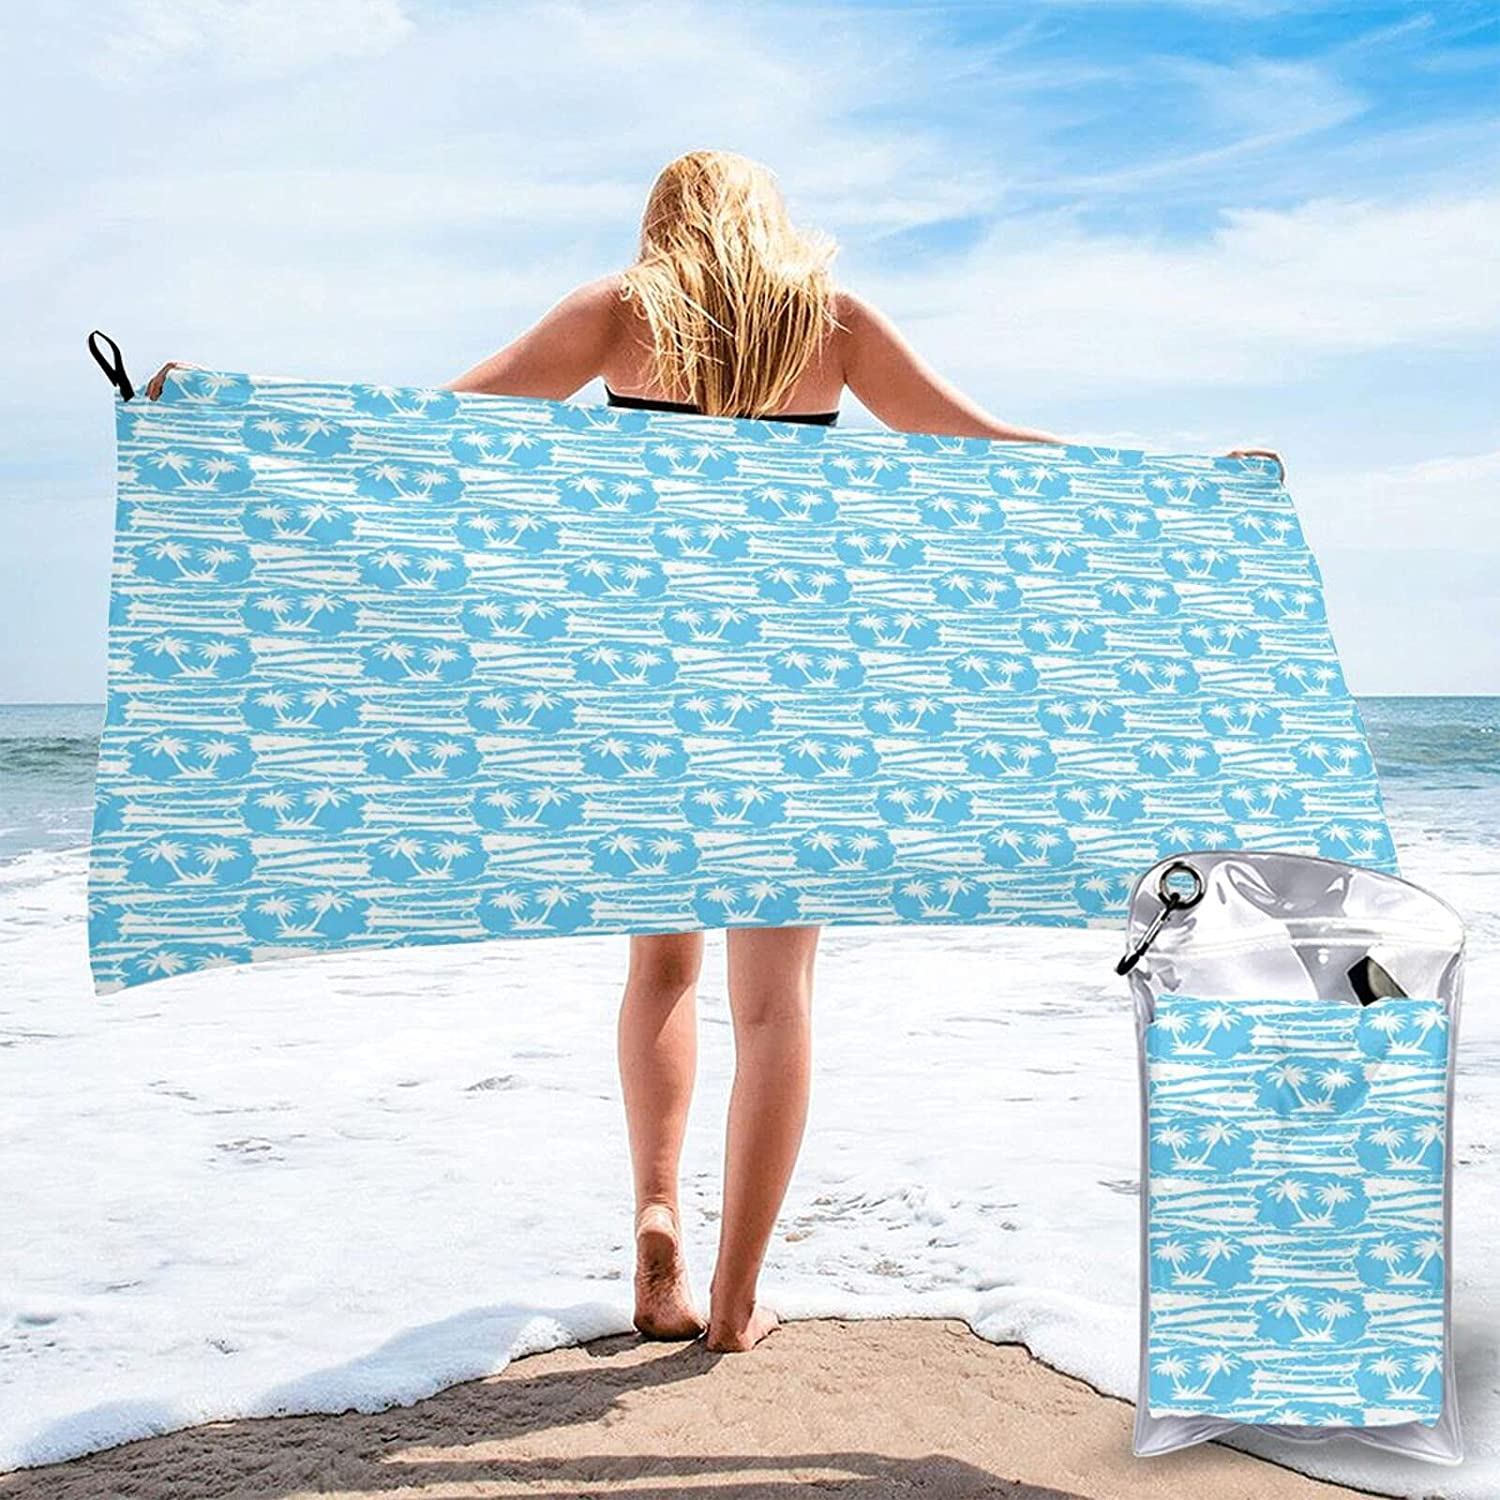 Superior Beach Branded goods Towel Thick Microfiber Cool with Summer Exotic Pal Pattern